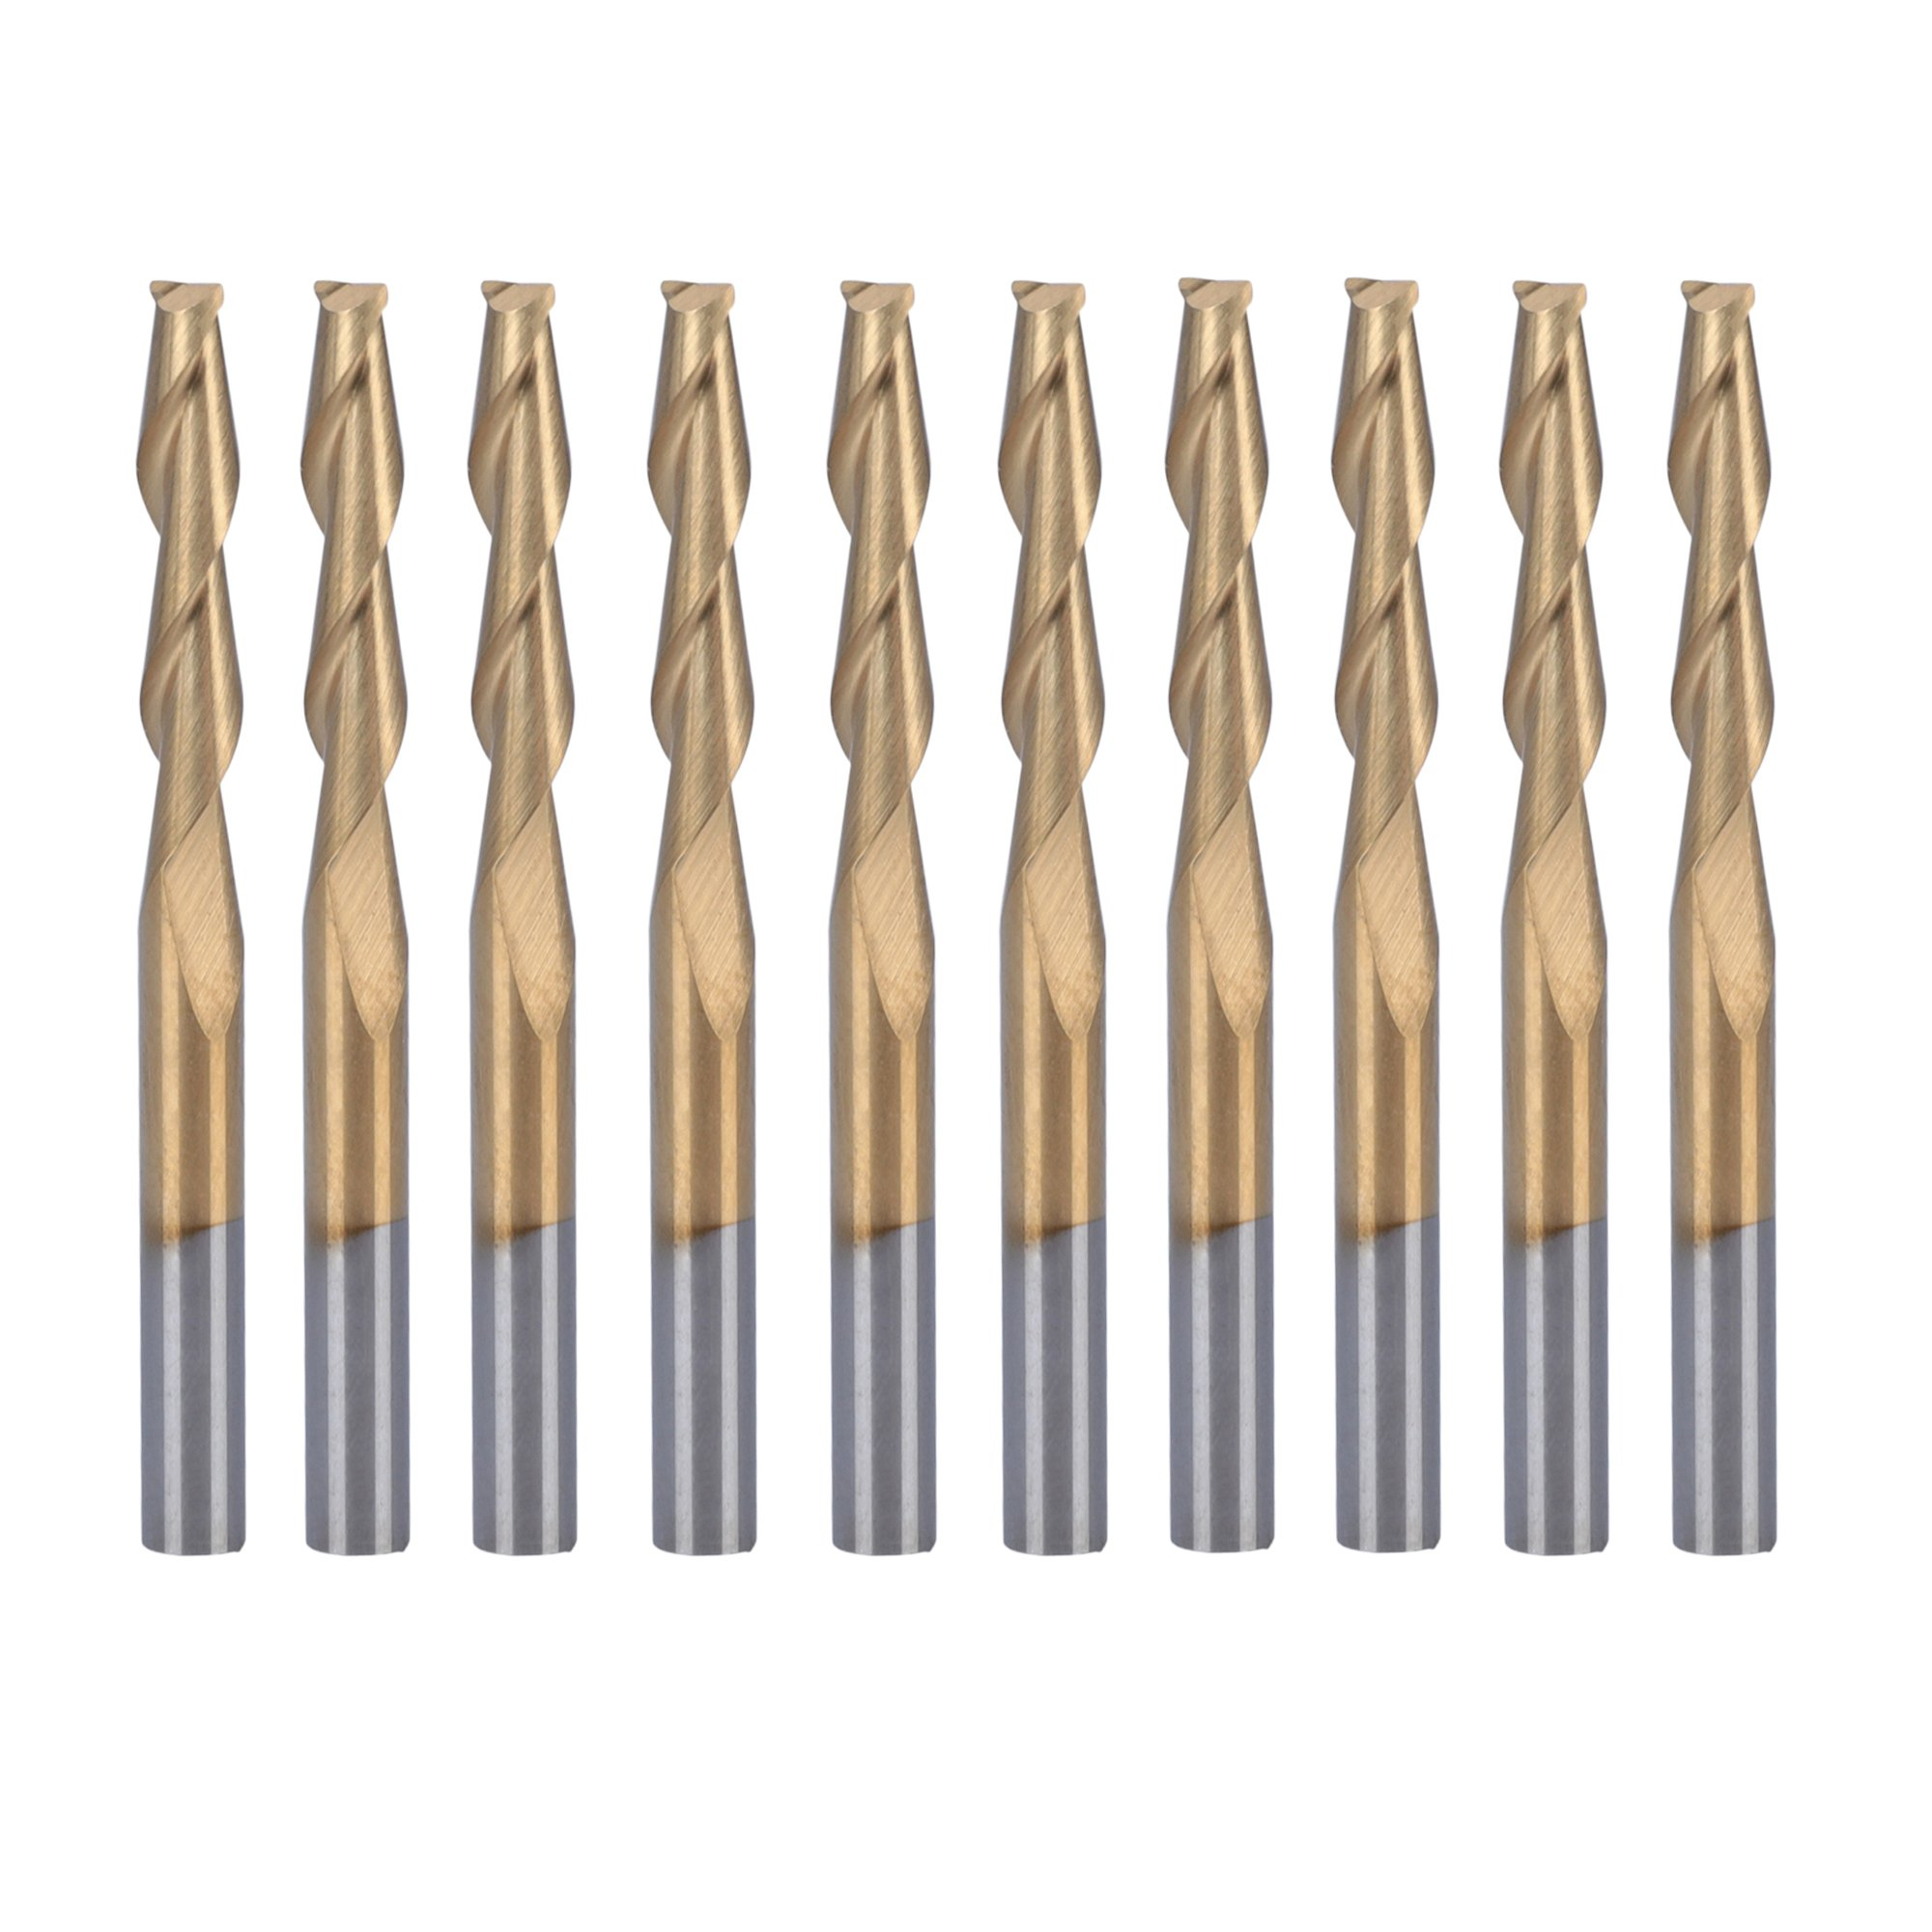 HQMaster 10 Pack 1/8''(3.175mm) Shank Dia. Titanium Coated End Mill Spiral Router Bits Milling Cutter 2-Flute CNC Upcut Cutting Engraving Bit Tungsten Steel Tool Set 38.5mm OAL (3.175 x 17 x 38.5 mm)